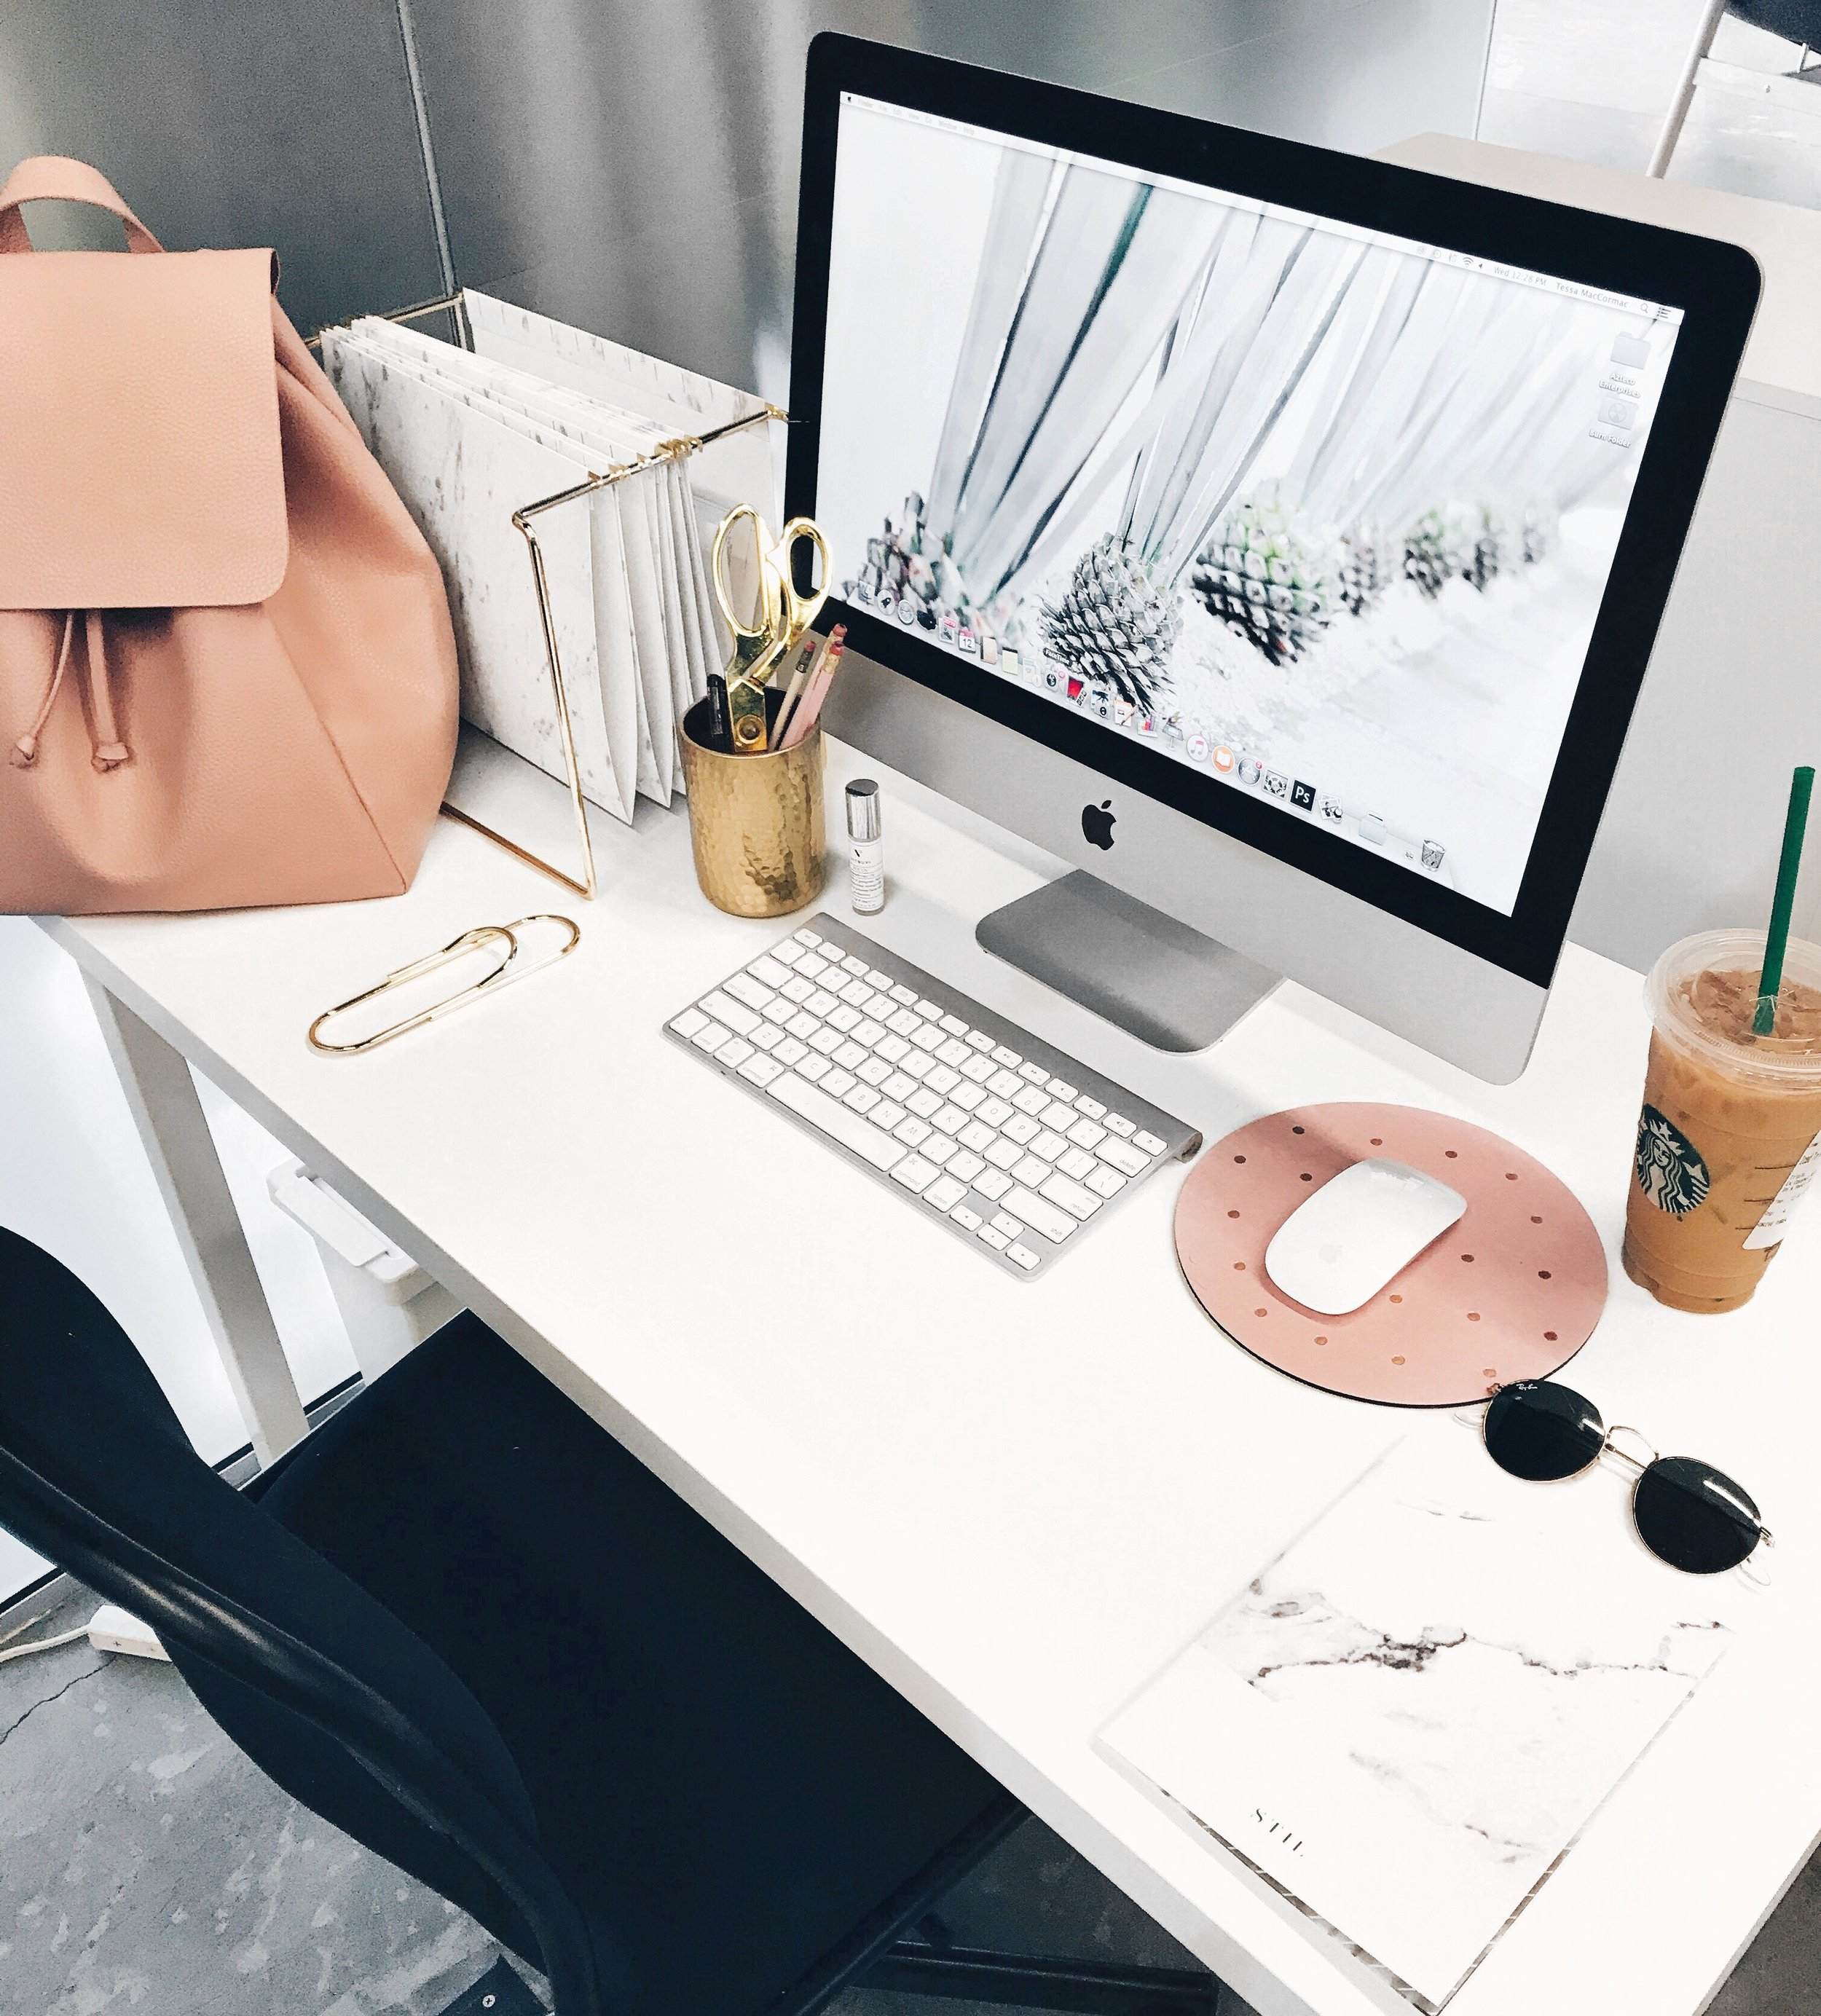 How to start a fashion business in 2019 | fashion designing business plan | how to start a clothing line from scratch